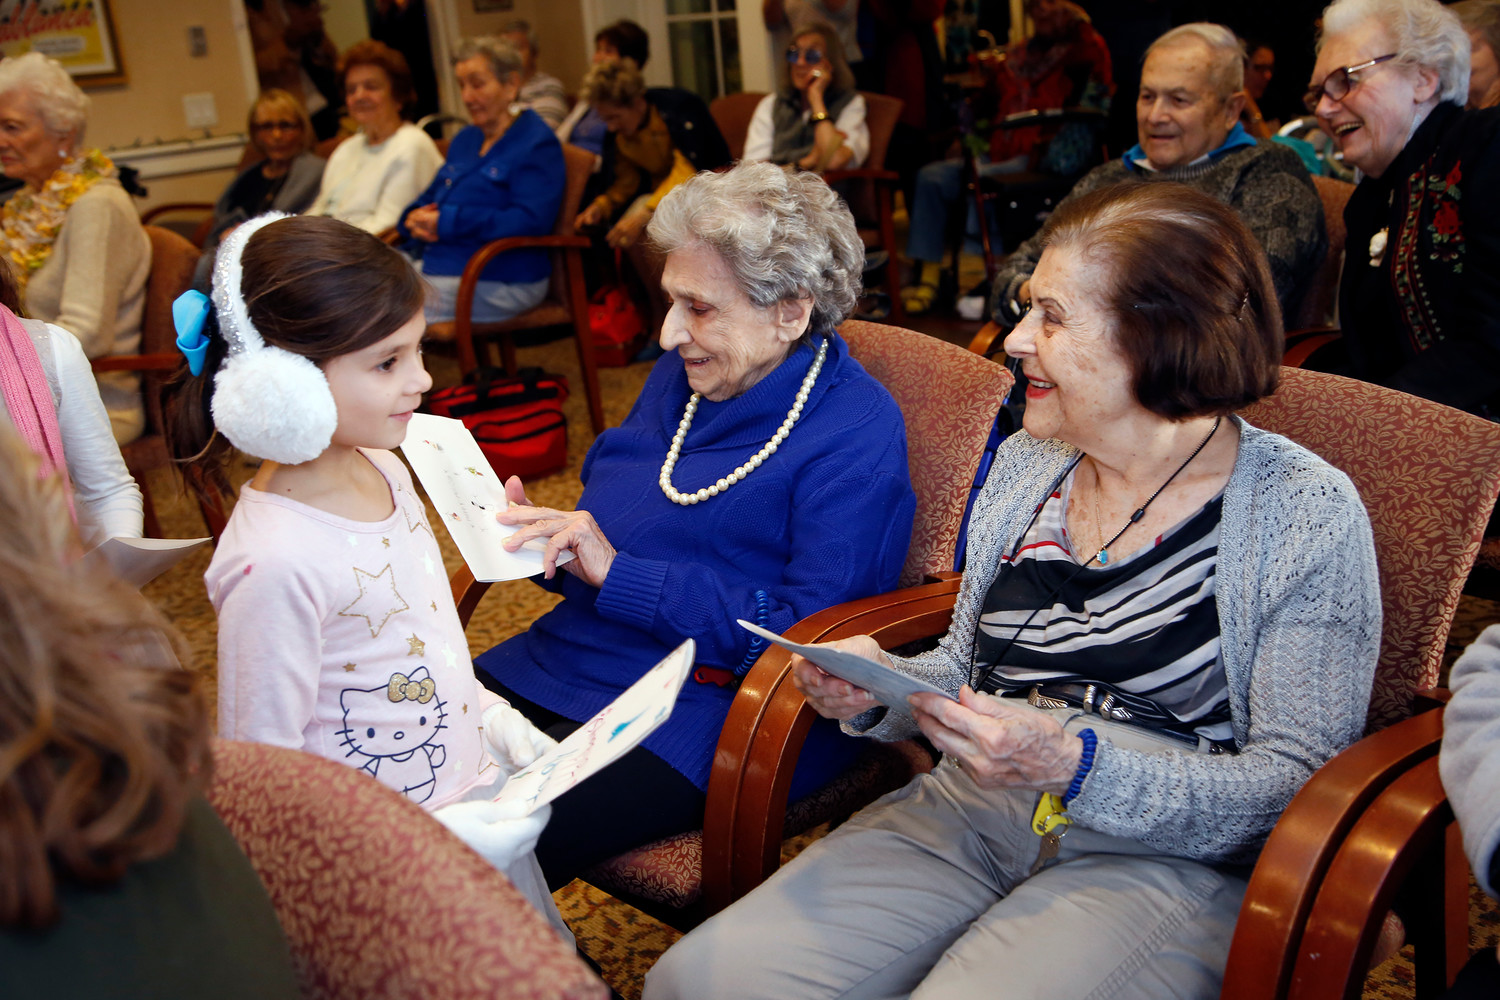 Rieley Cohen handed out holiday cards to seniors Ruth Miller and Cynthia Dorfman.